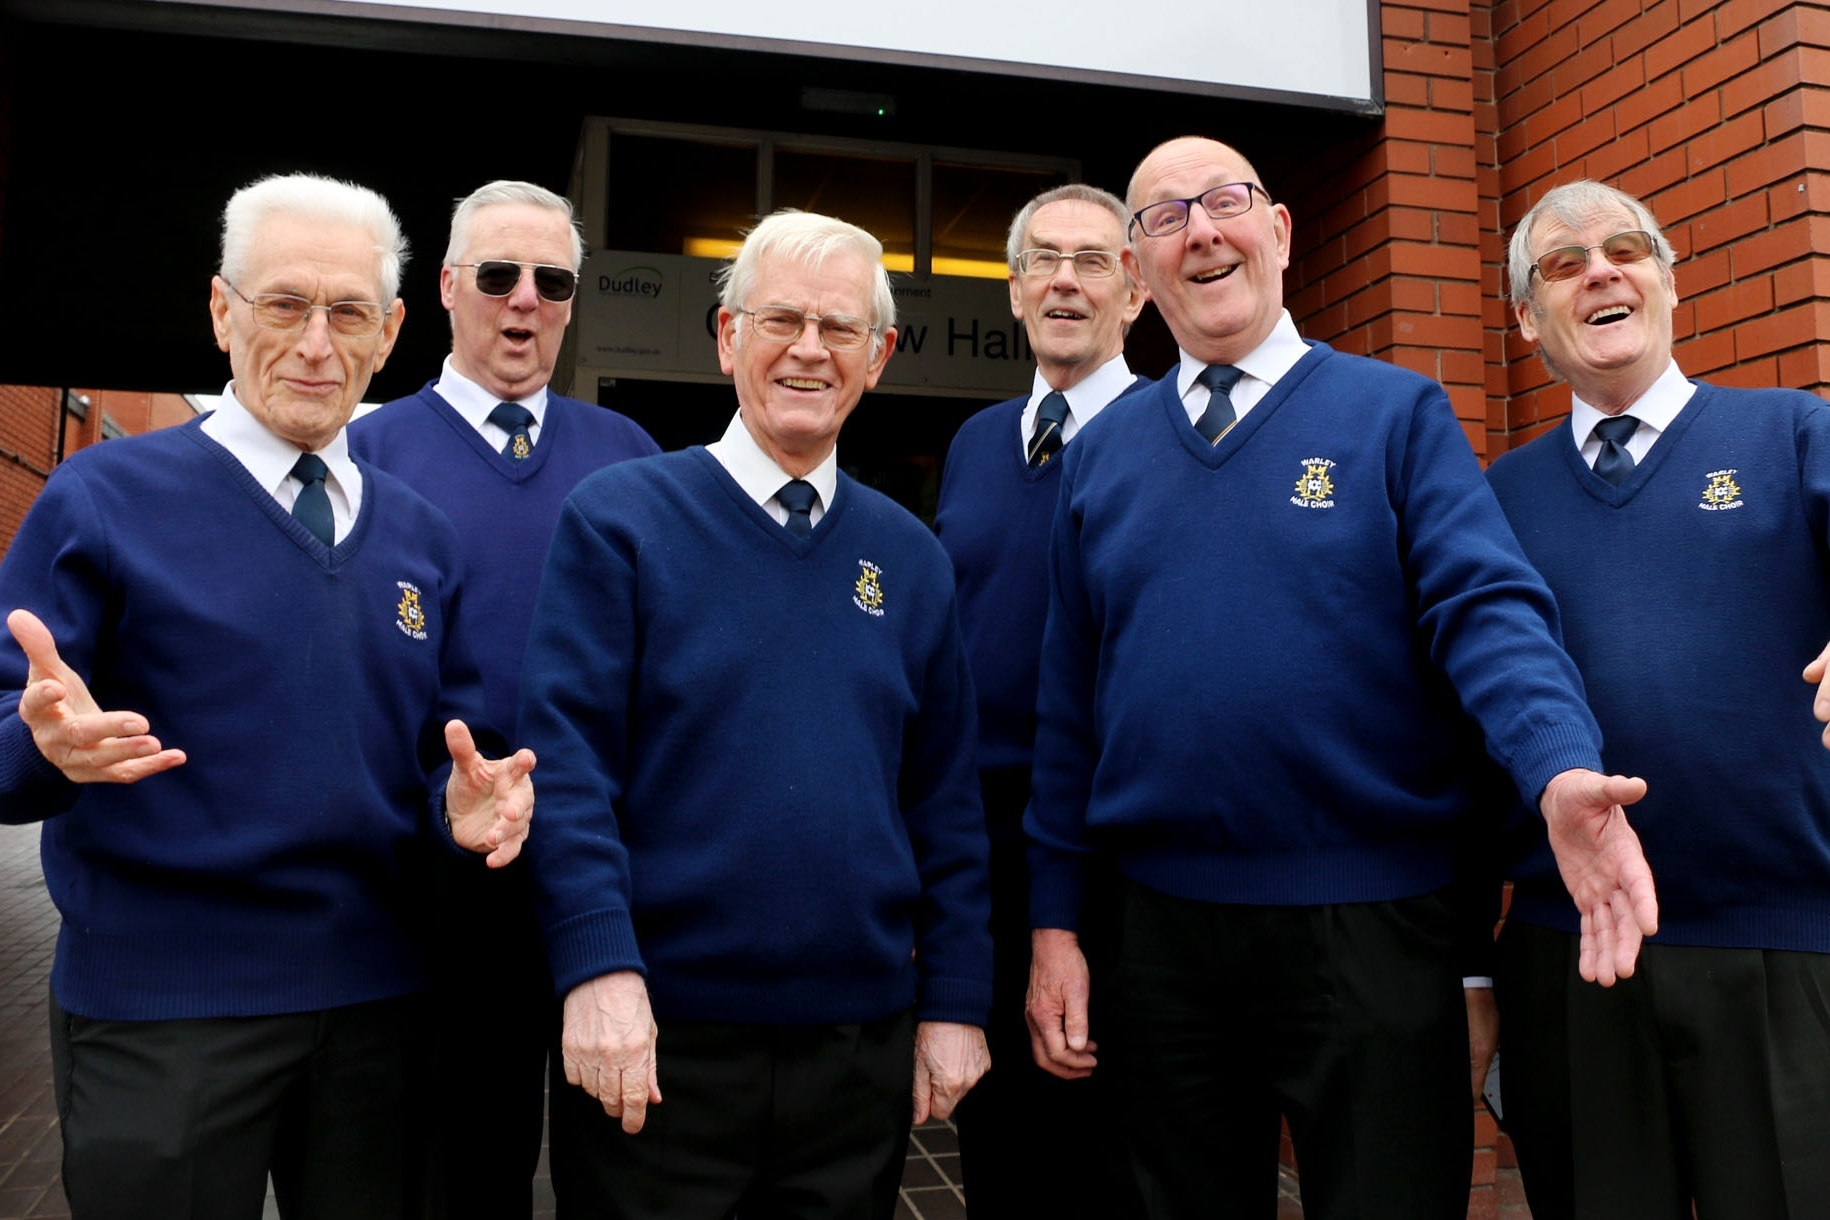 Warley Male Choir's John Larwood, Les Green, Brian Randle, Clive Bradley, Ron Sweetland and Brian Powney.